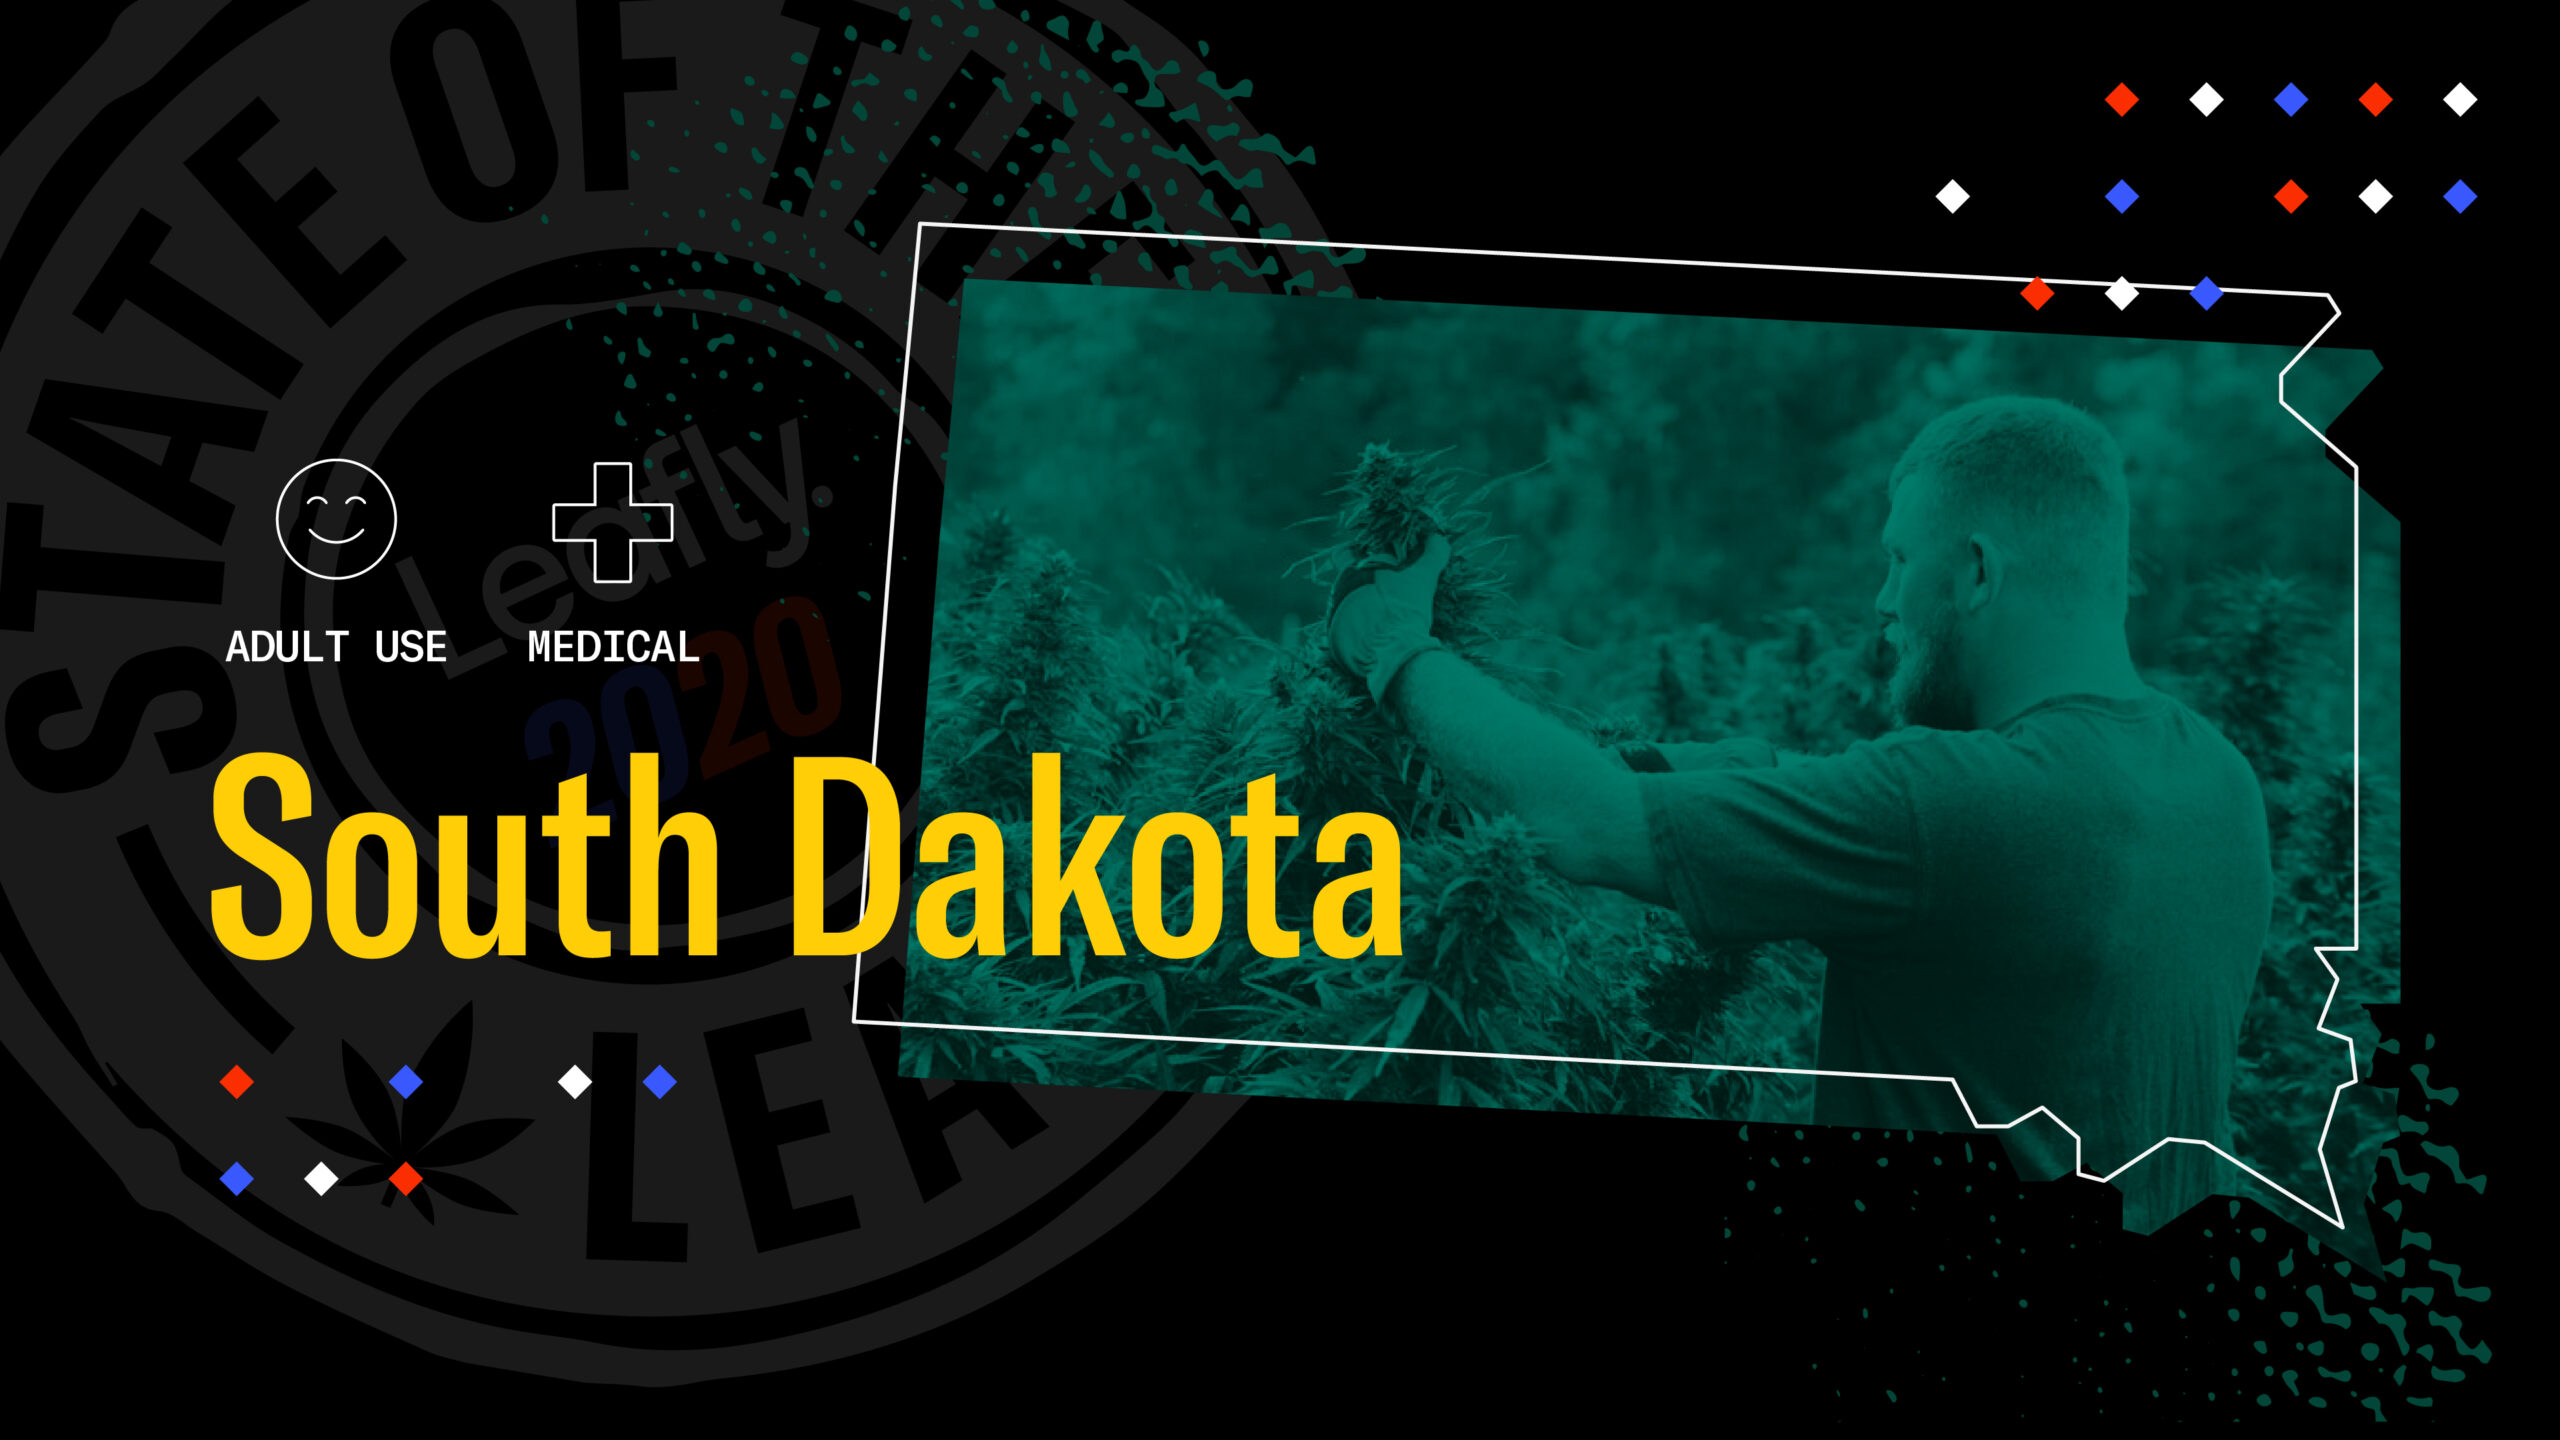 Election 2020: South Dakota cannabis legalization guide